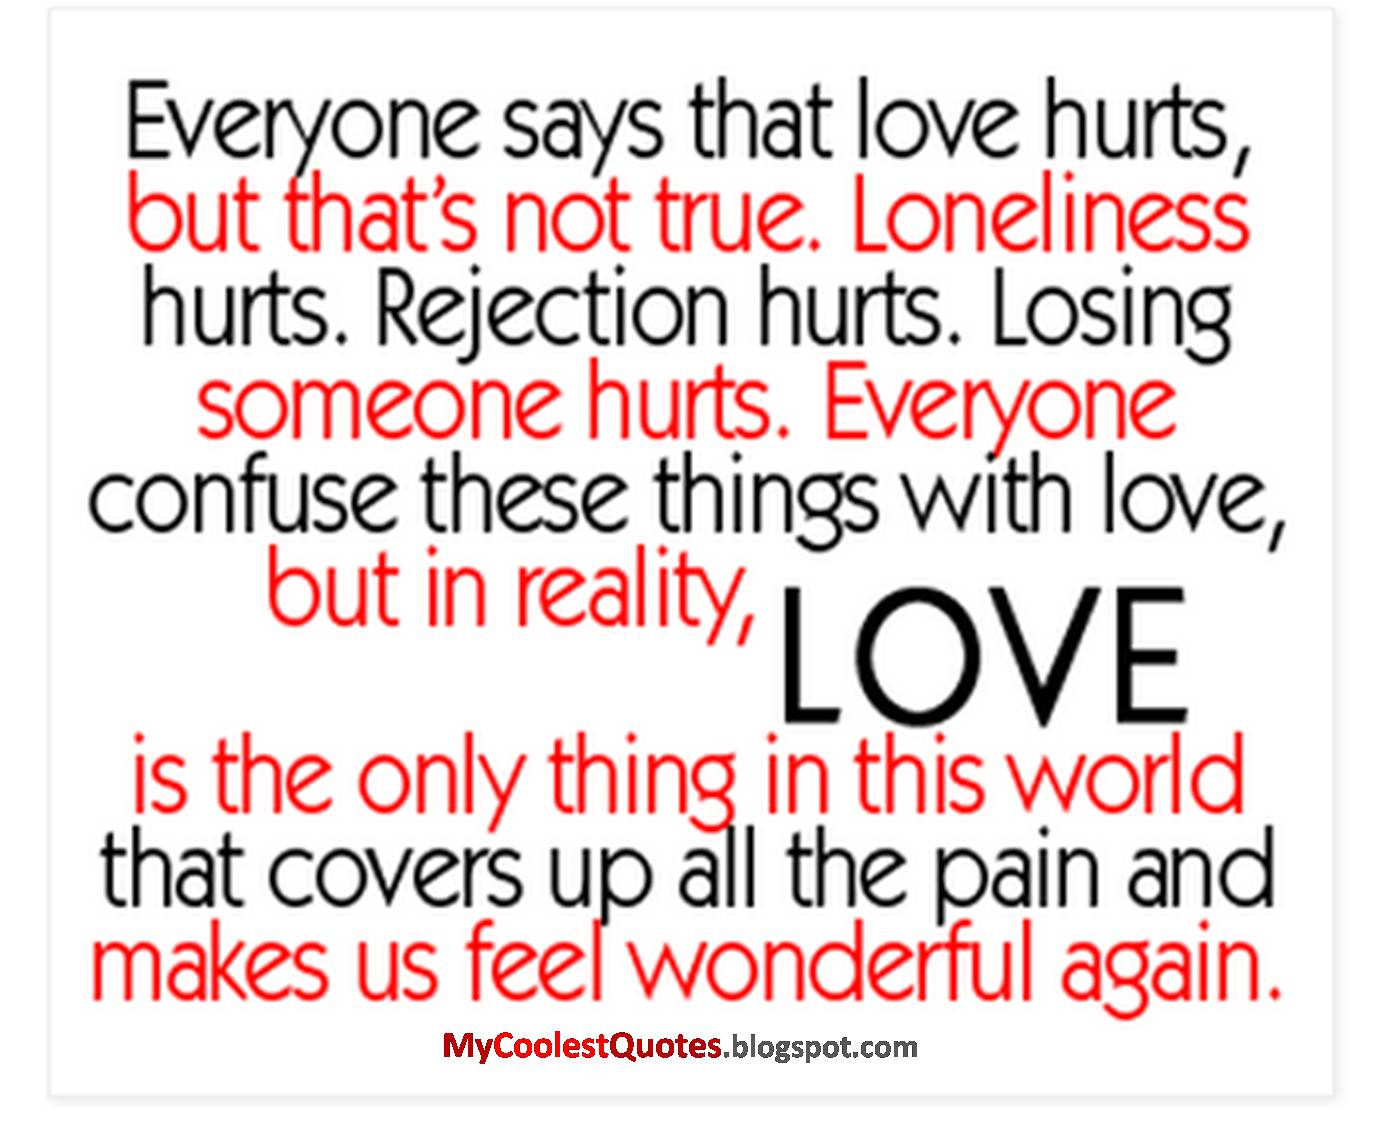 Quotes About Hurt My Coolest Quotes Does Love Really Hurt